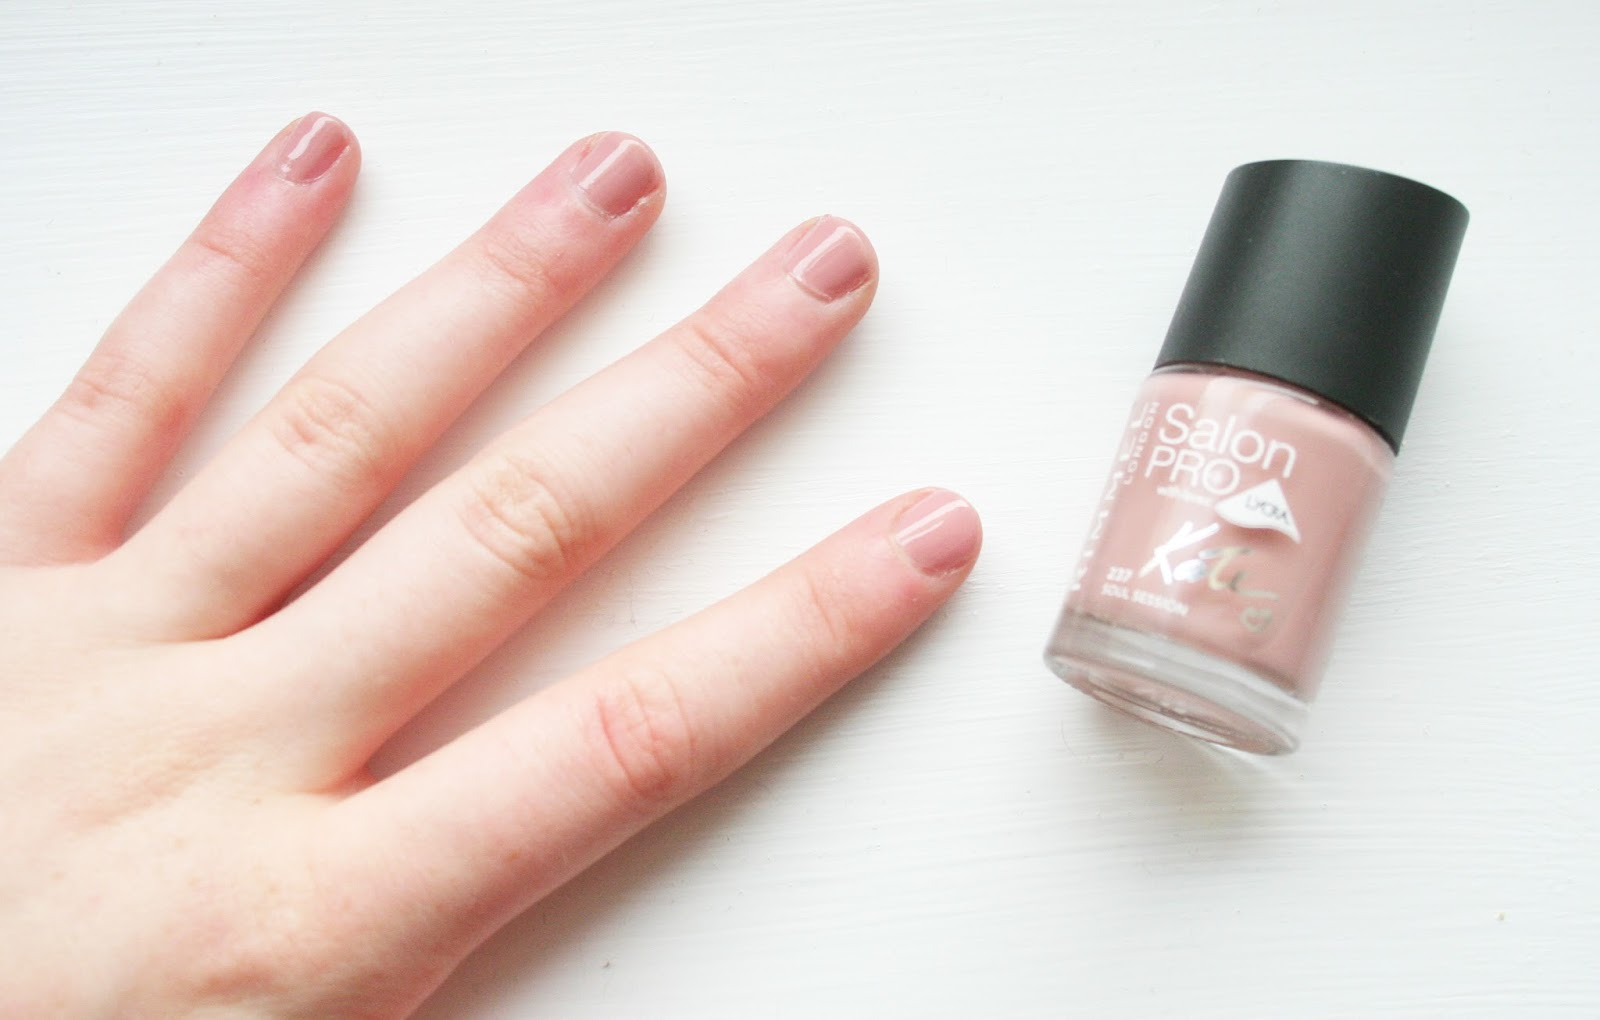 NOTD || Rimmel Kate Moss Nude Collection in Soul Session